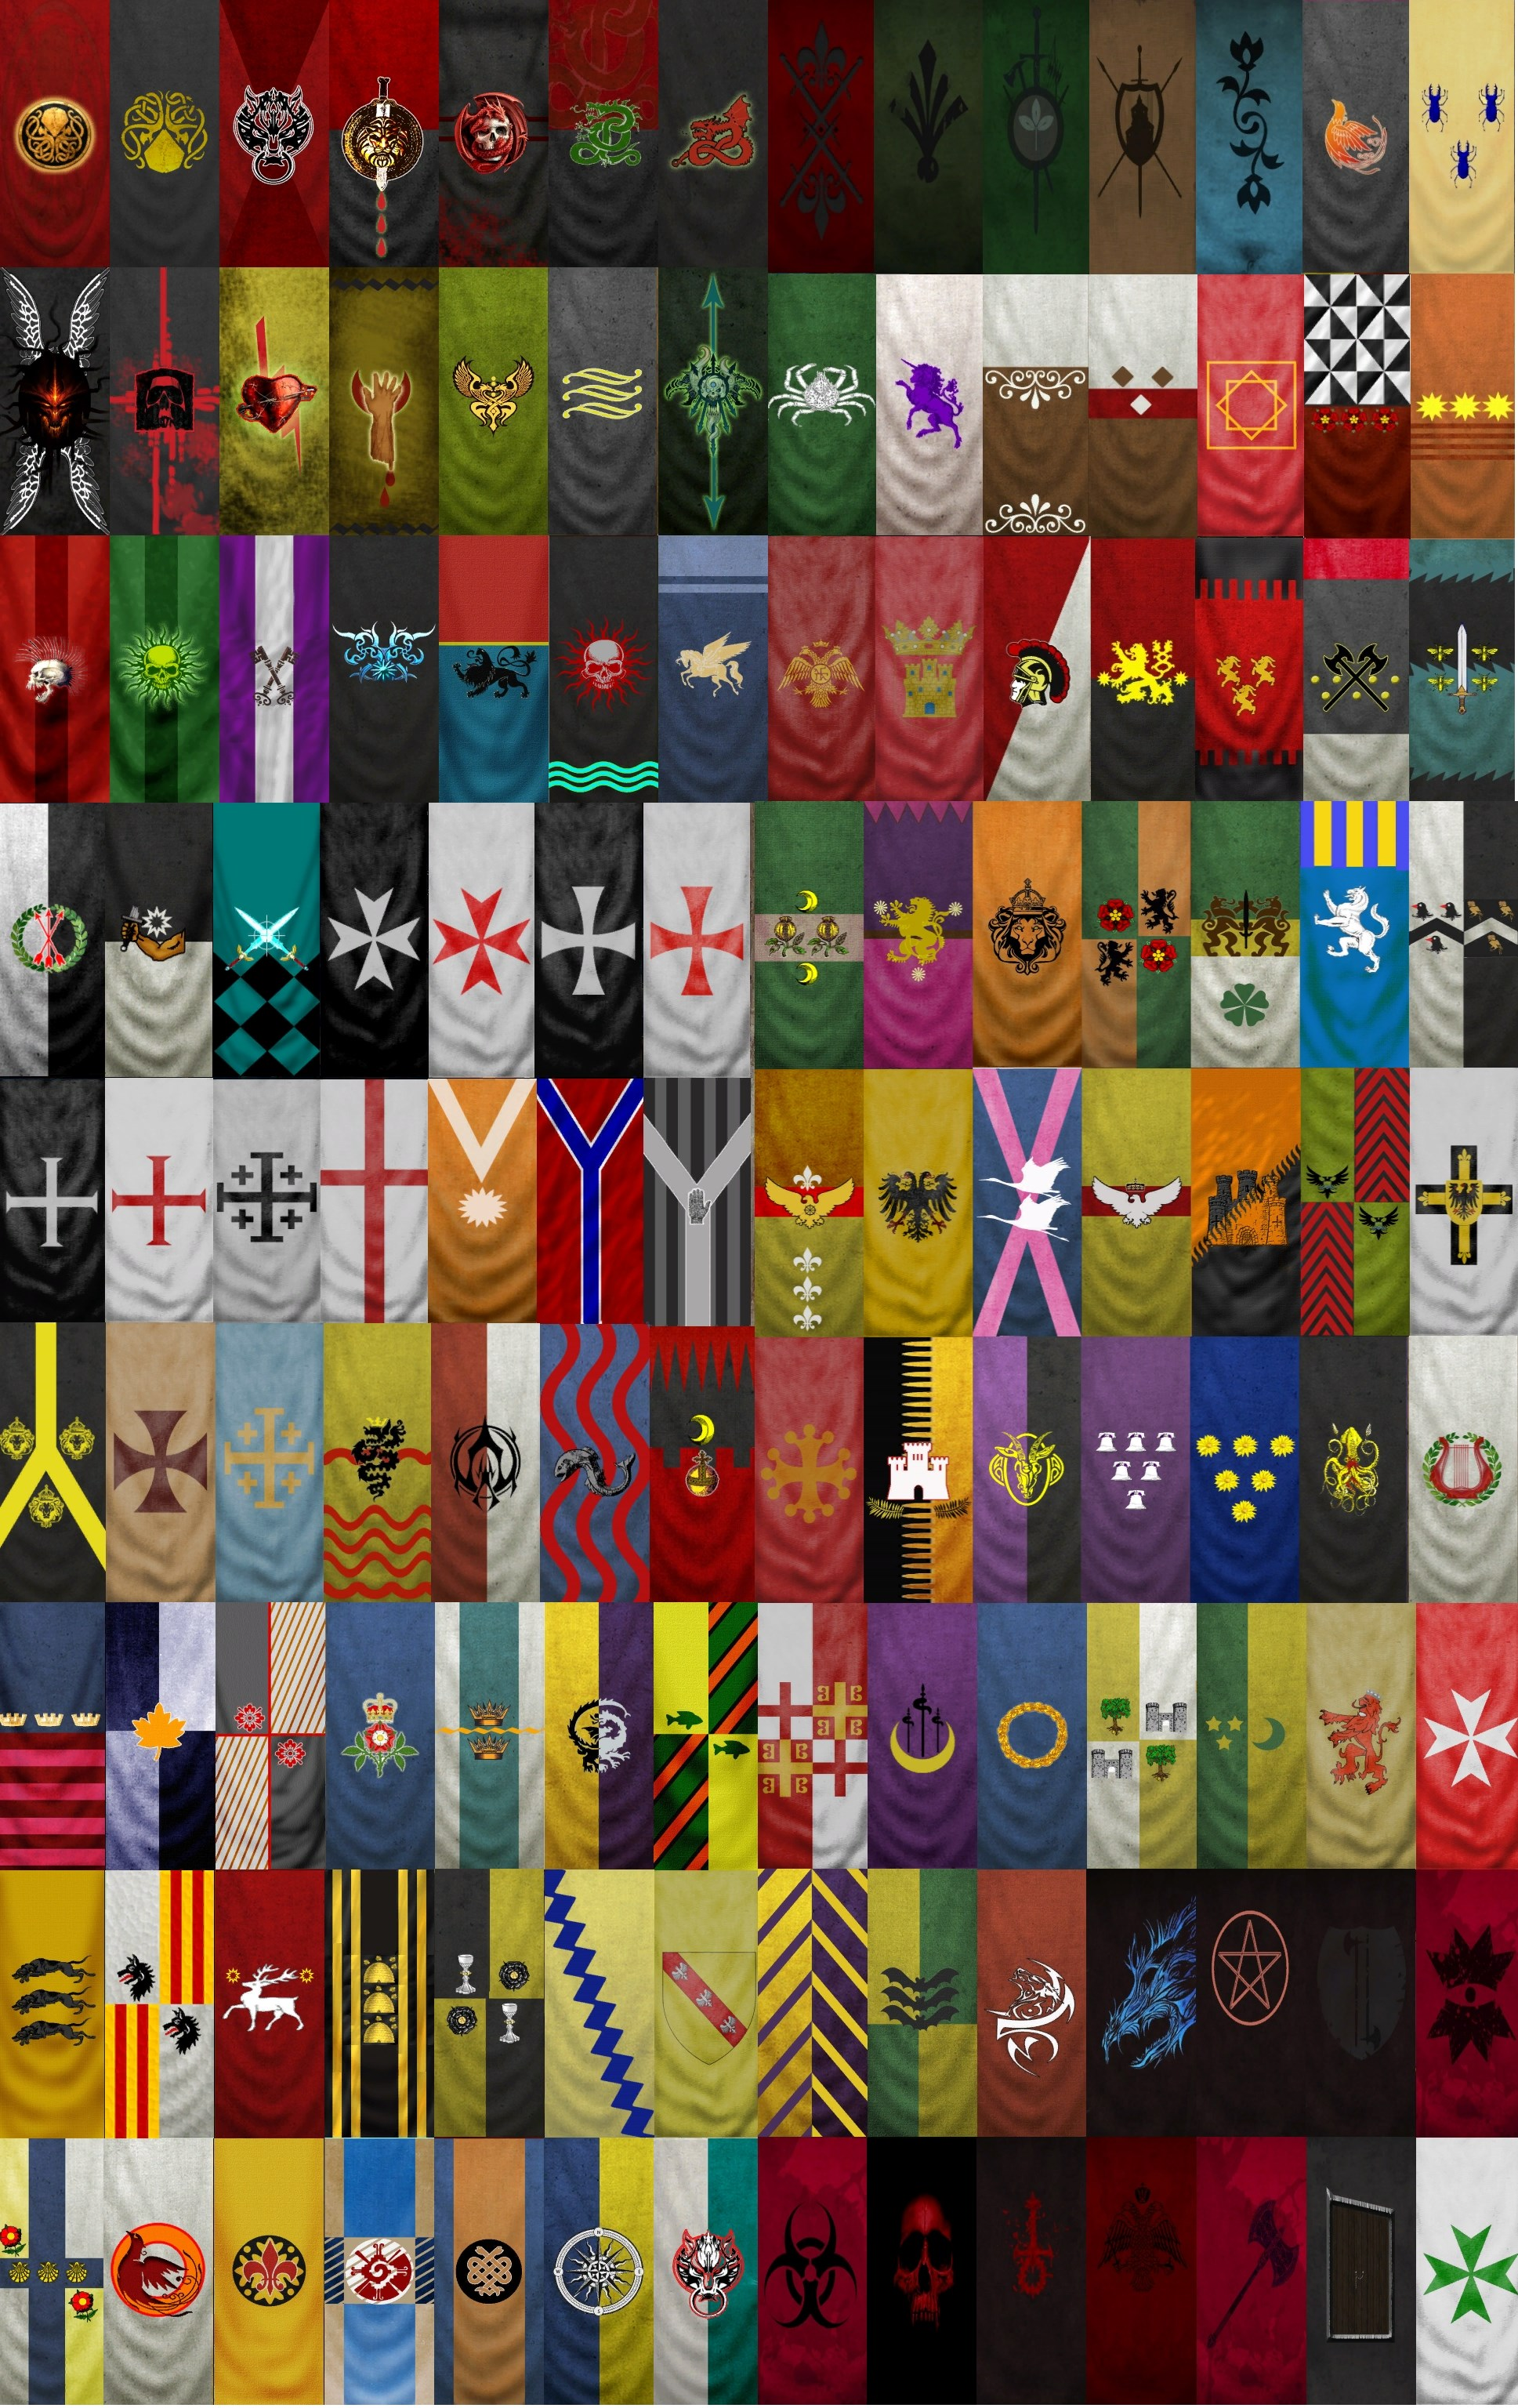 Now Banners Monster Banners